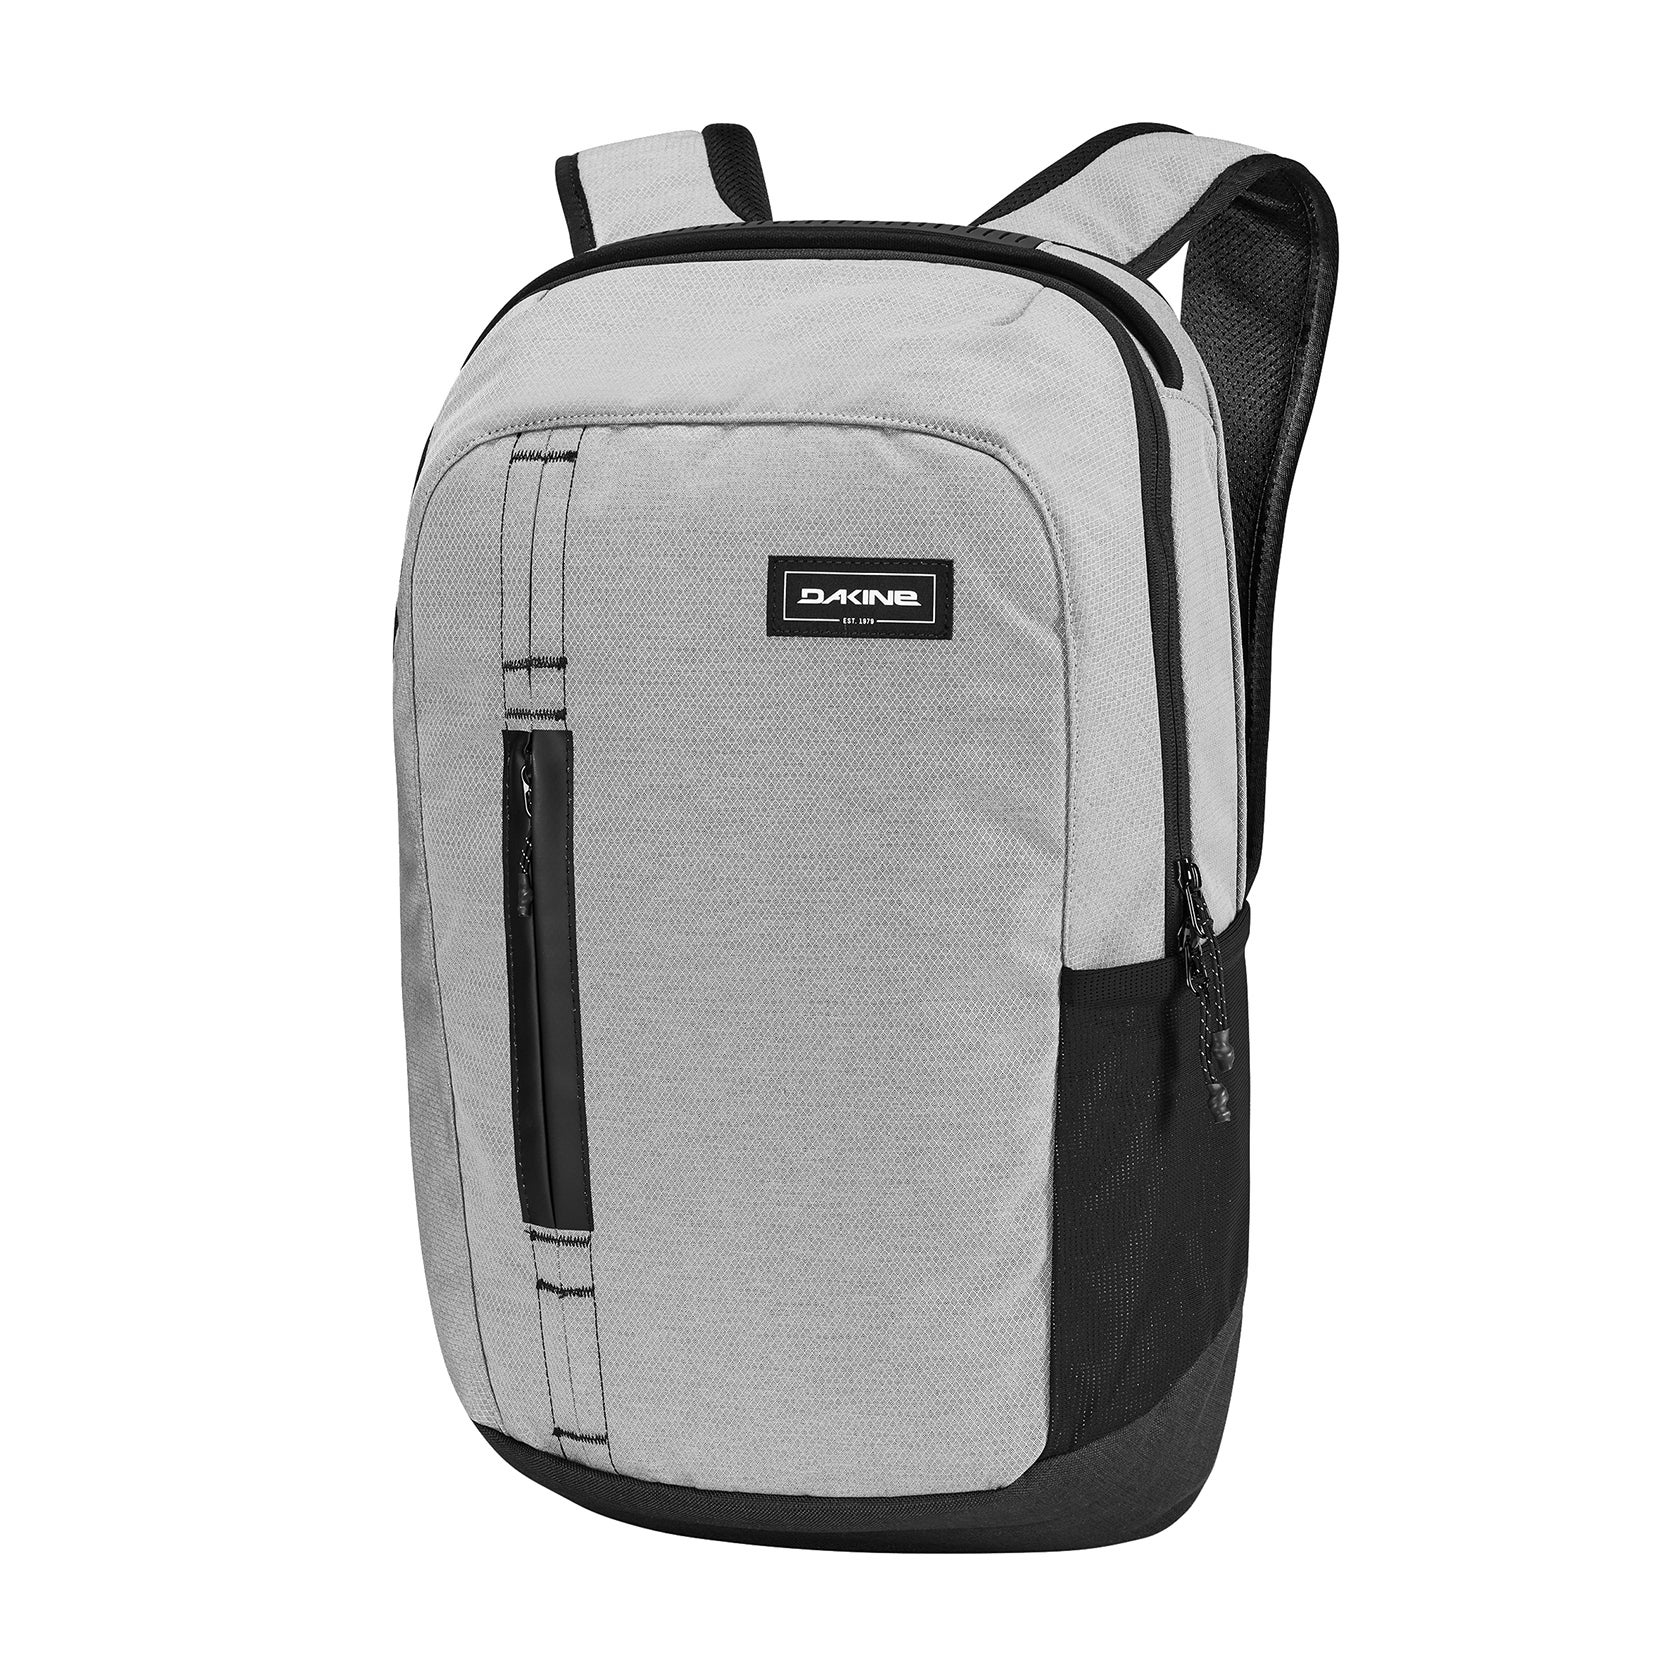 01e026c7153 Dakine Network 26l Laptop Backpack available from Surfdome